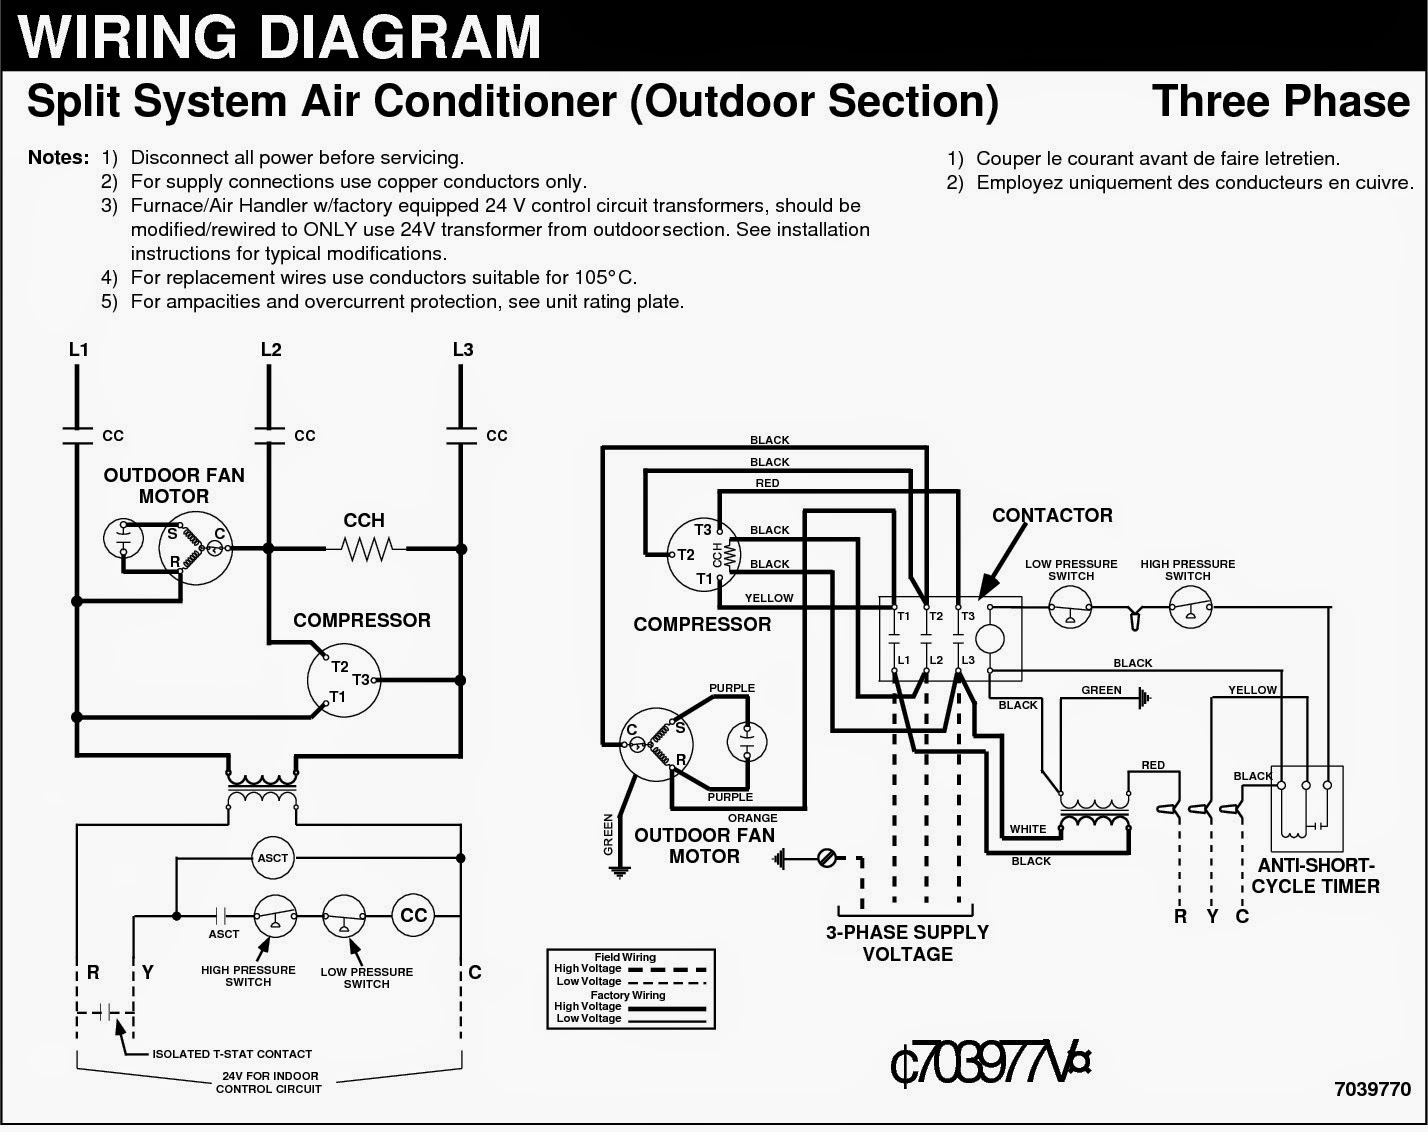 Carrier Heating Unit Wiring Diagram also 487094 Nest Thermostat Thermolec Electric Boiler also Wiring Diagram For 6 Wire Nest System furthermore Wiring Diagram 1 Phase Ac Split Unit as well Mitsubishi Canter Wiring Diagram. on nest thermostat heat pump wiring diagram